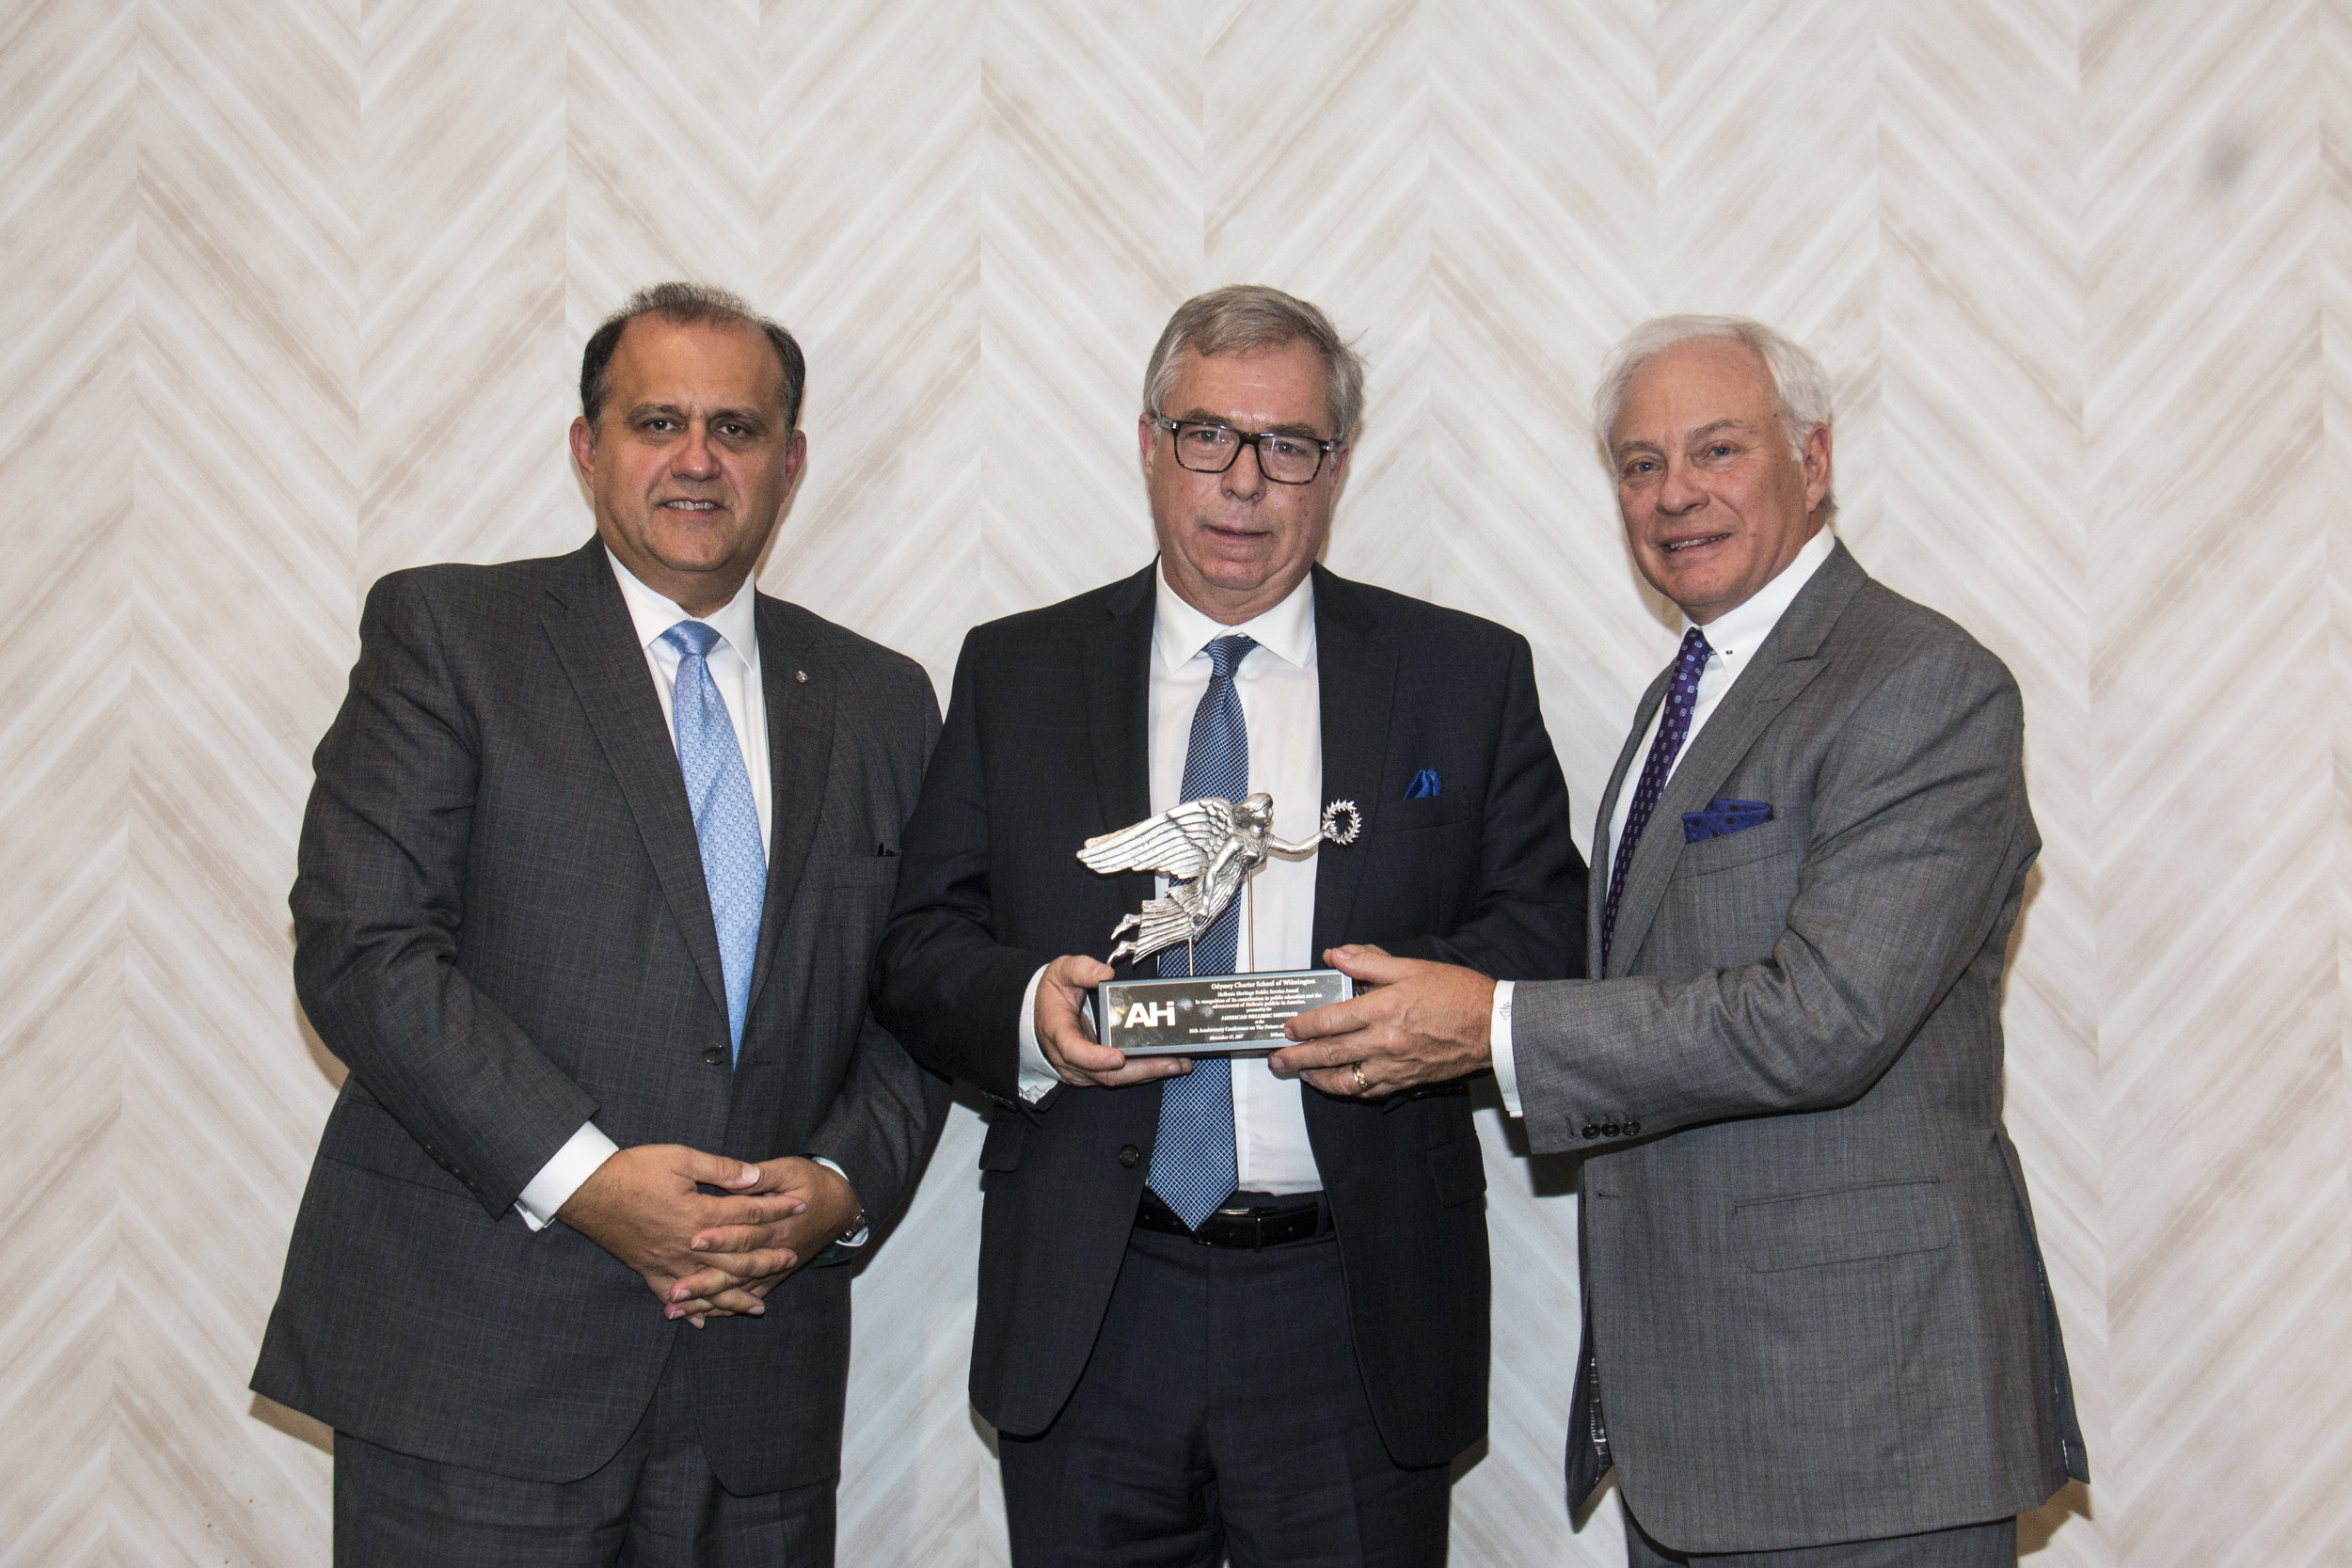 Dimitri Dandolos, President of the Board of Directors, accepts the AHI Hellenic Heritage Public Service Award in recognition of its contribution to public education and the advancement of Hellenic paideia in America on behalf of the Odyssey Charter School of Wilmington from Nick Larigakis and Nick Chimicles.